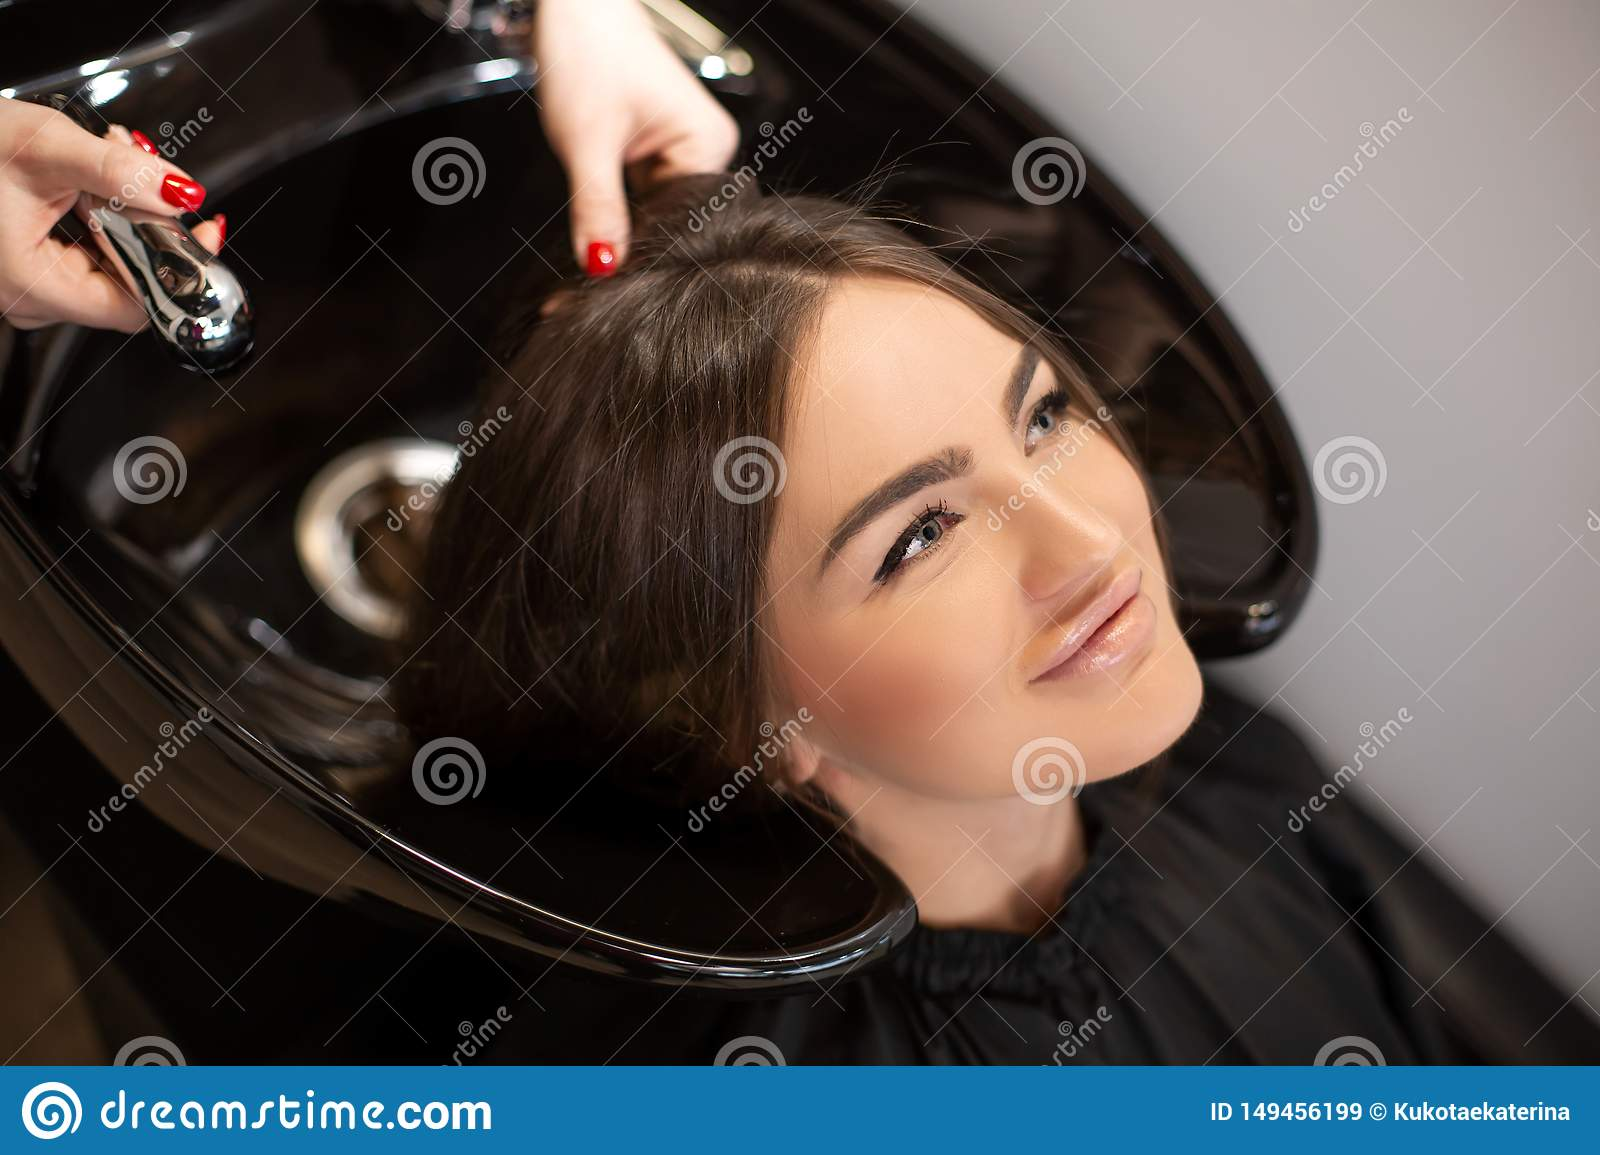 Haircut master washes hair of her client`s had